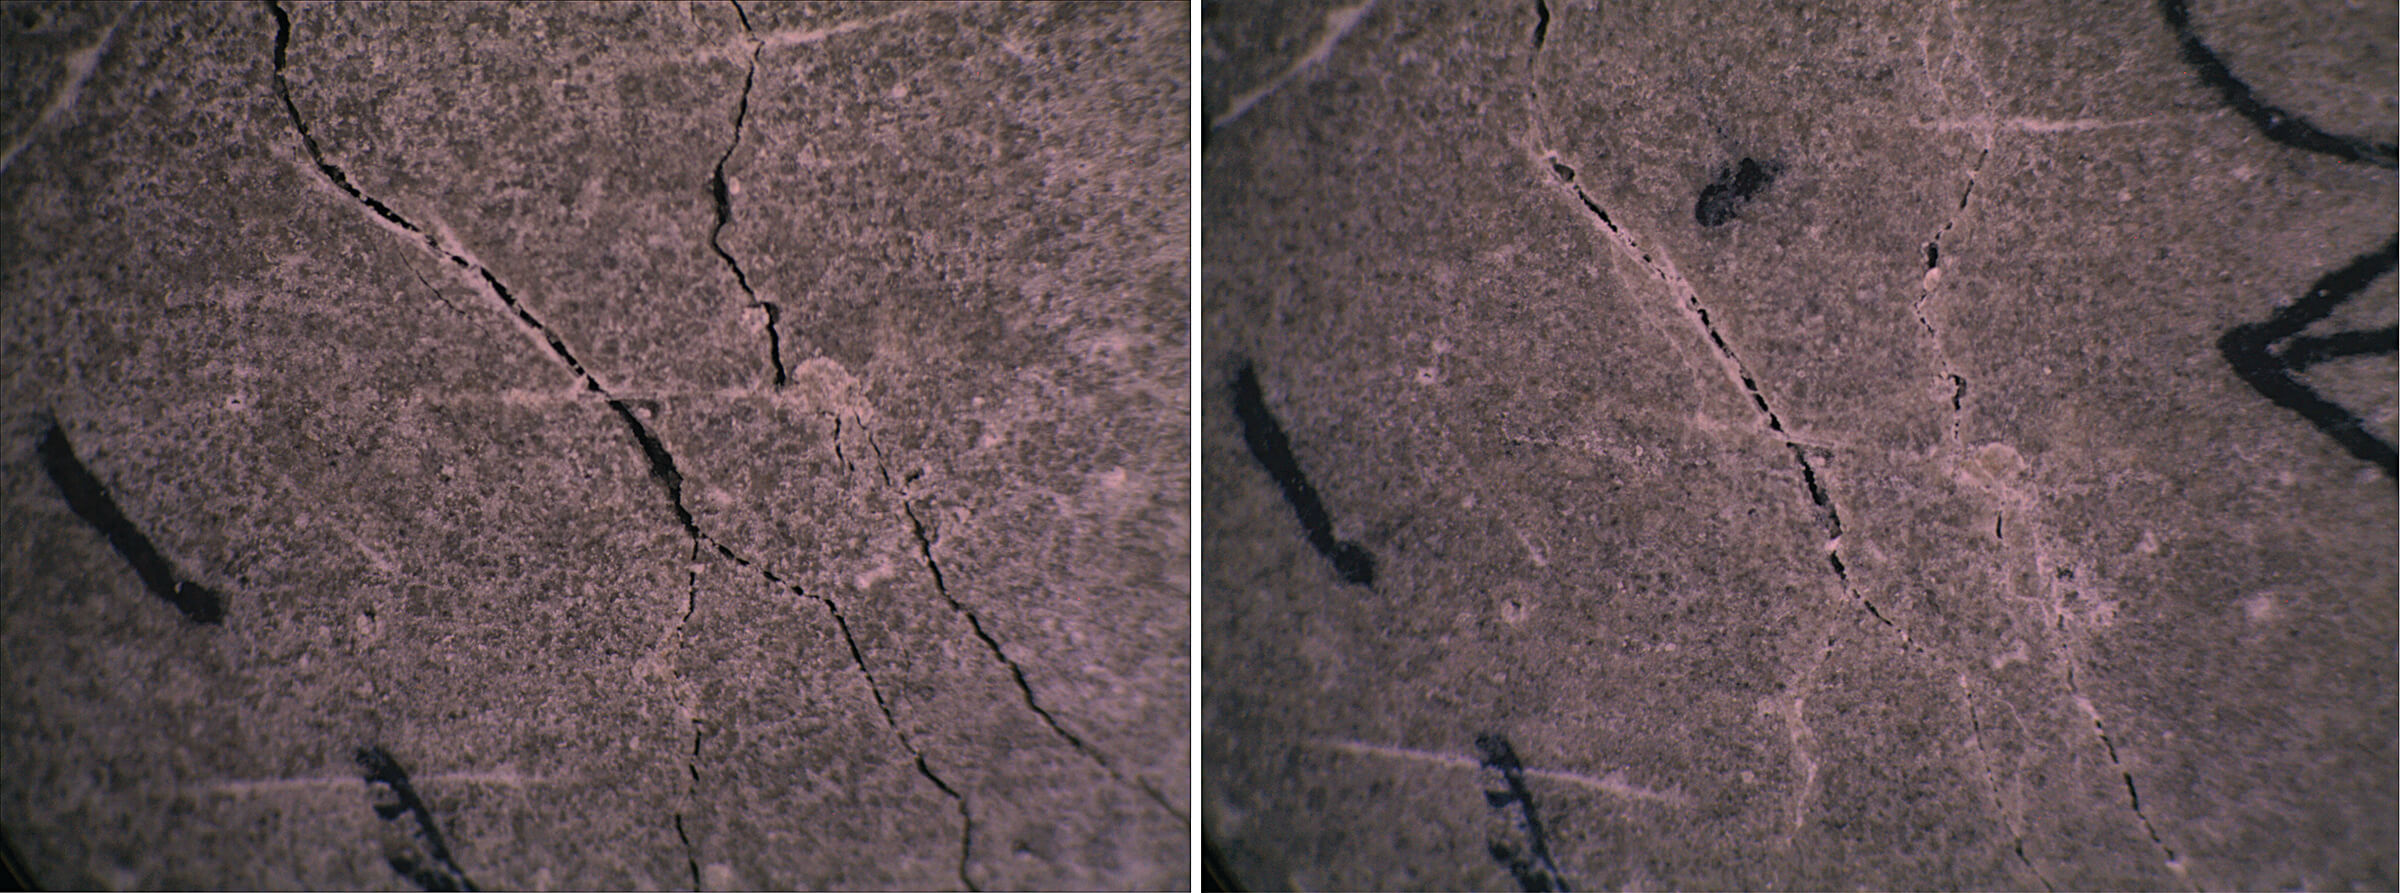 Concrete on the left shows cracks that are healed 28 days later in the image on the right